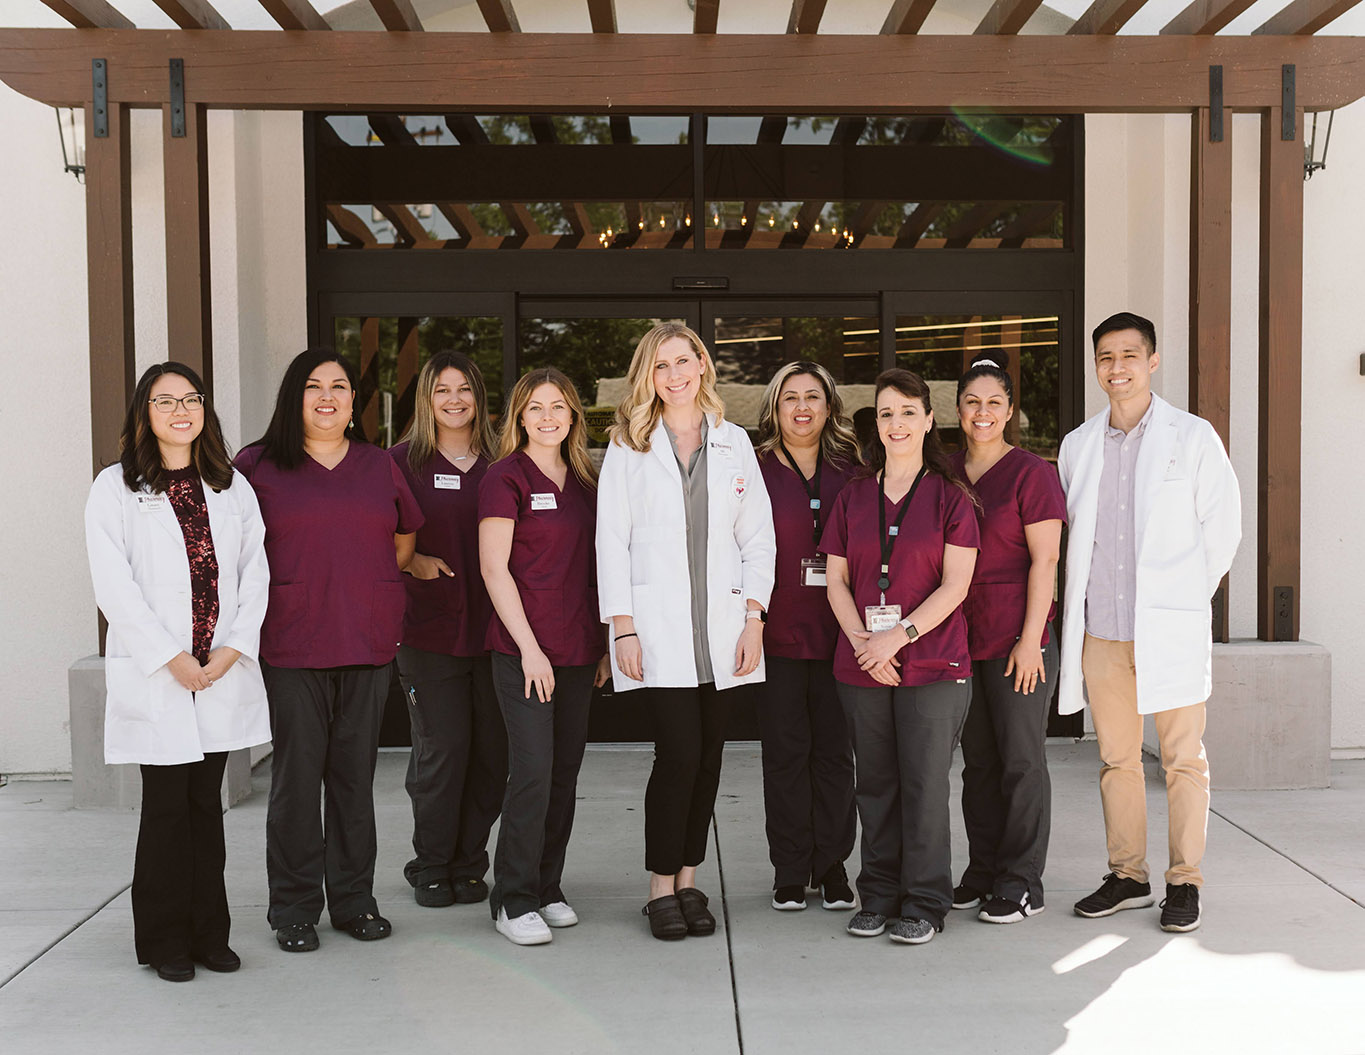 Image of the Patterson Family Pharmacy Staff